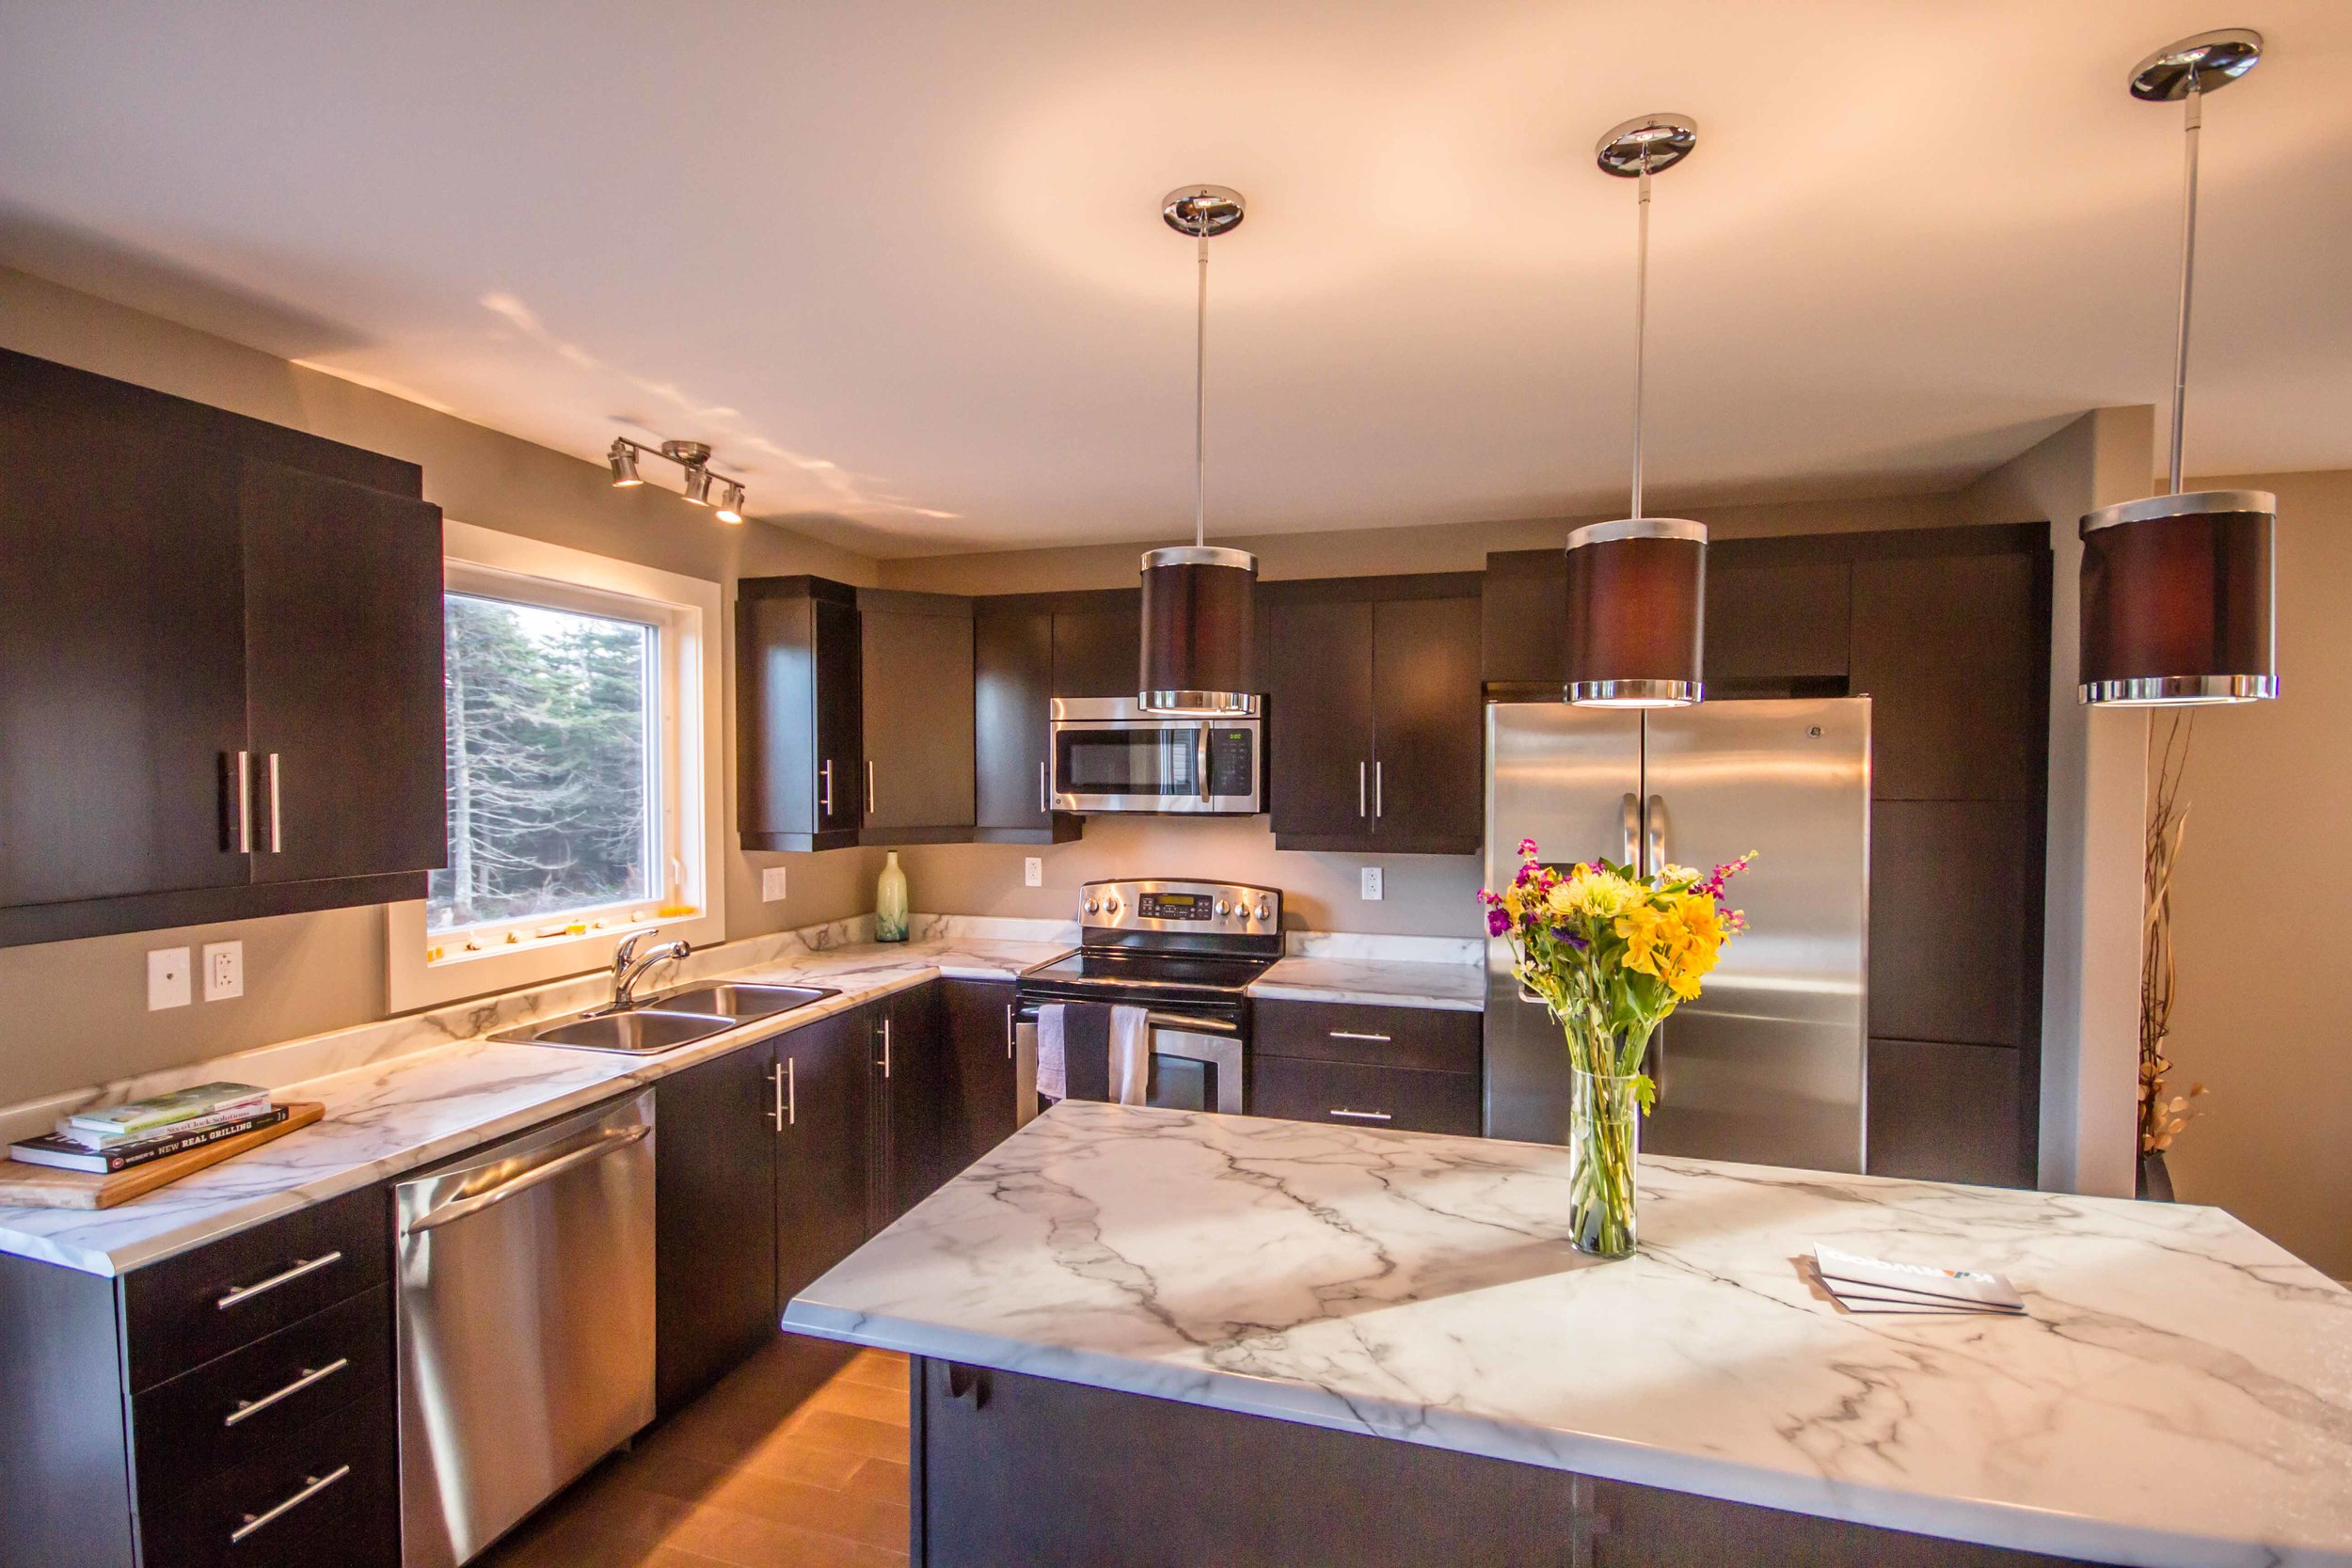 72 Kenai Crescent - Kitchen Only.jpg